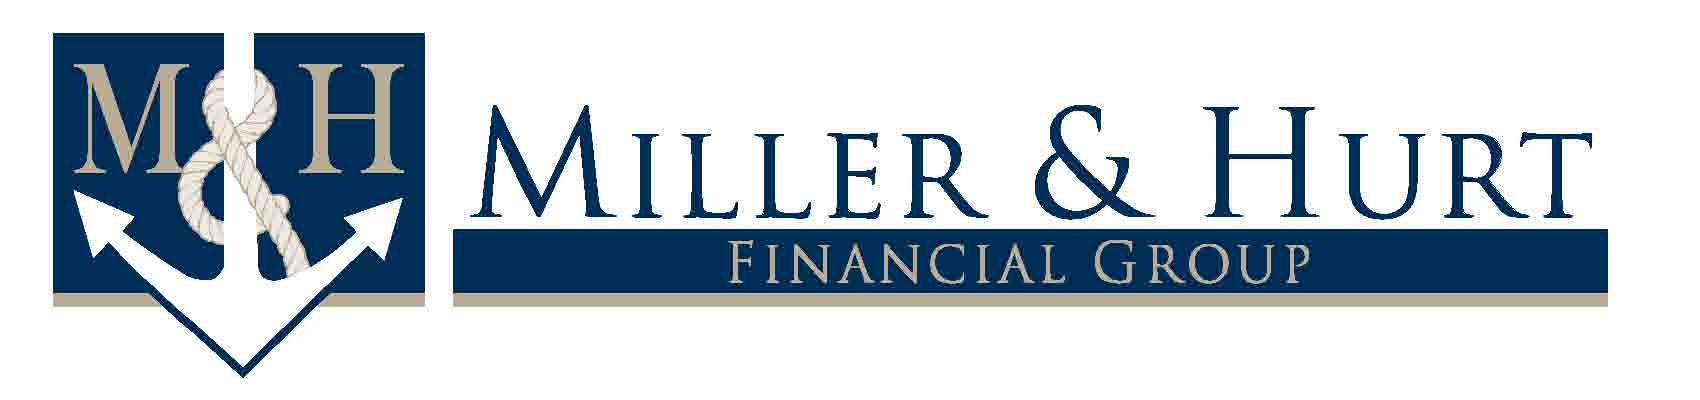 Miller & Hurt Financial Group